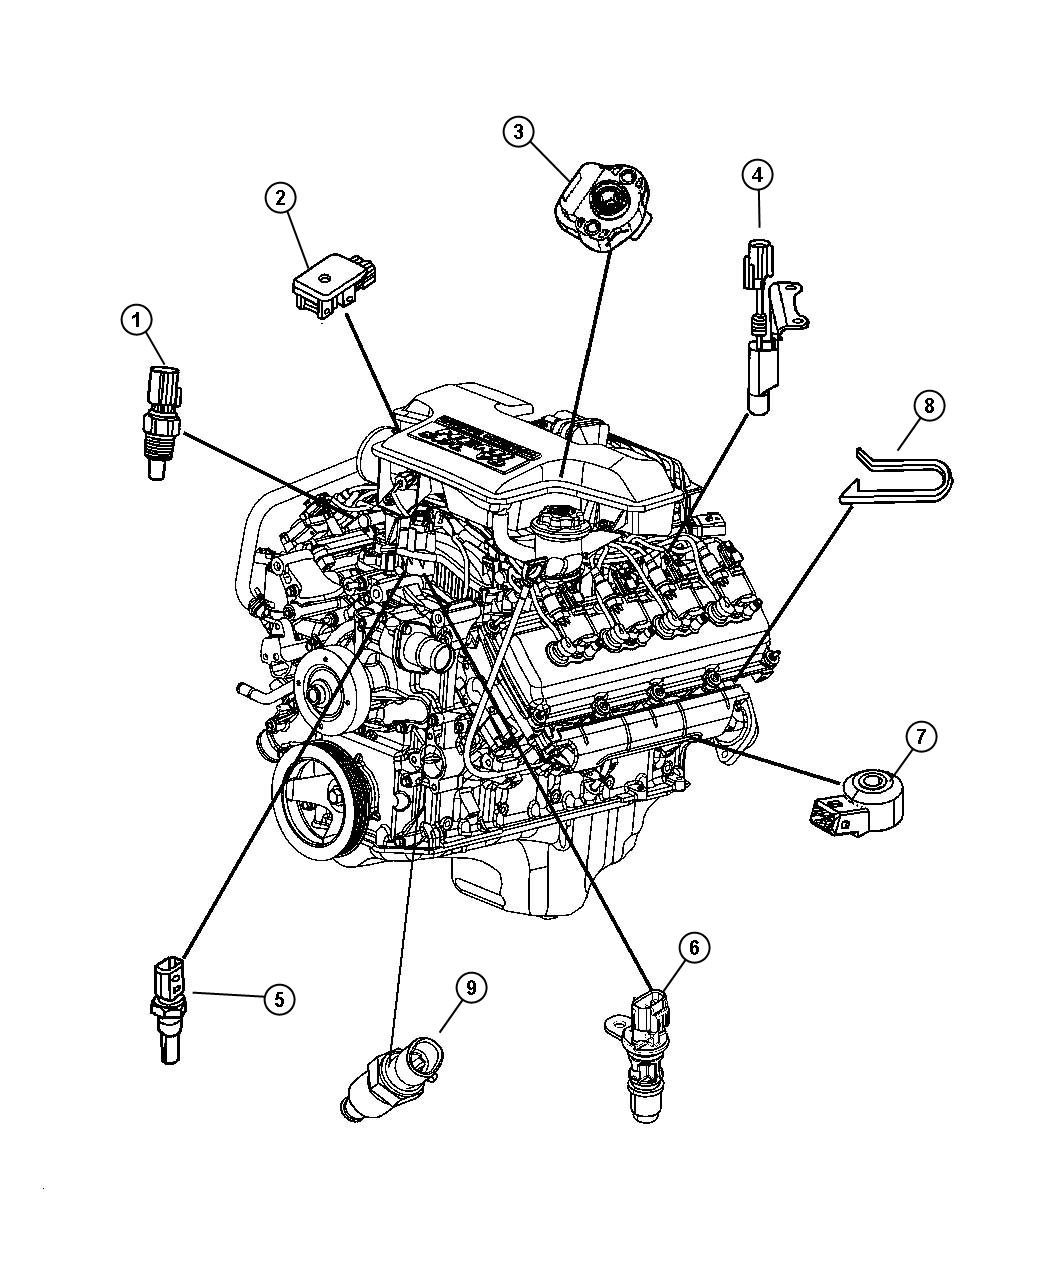 5 7l Chevy Engine Parts Diagram 5 Free Engine Image For User Manual Download